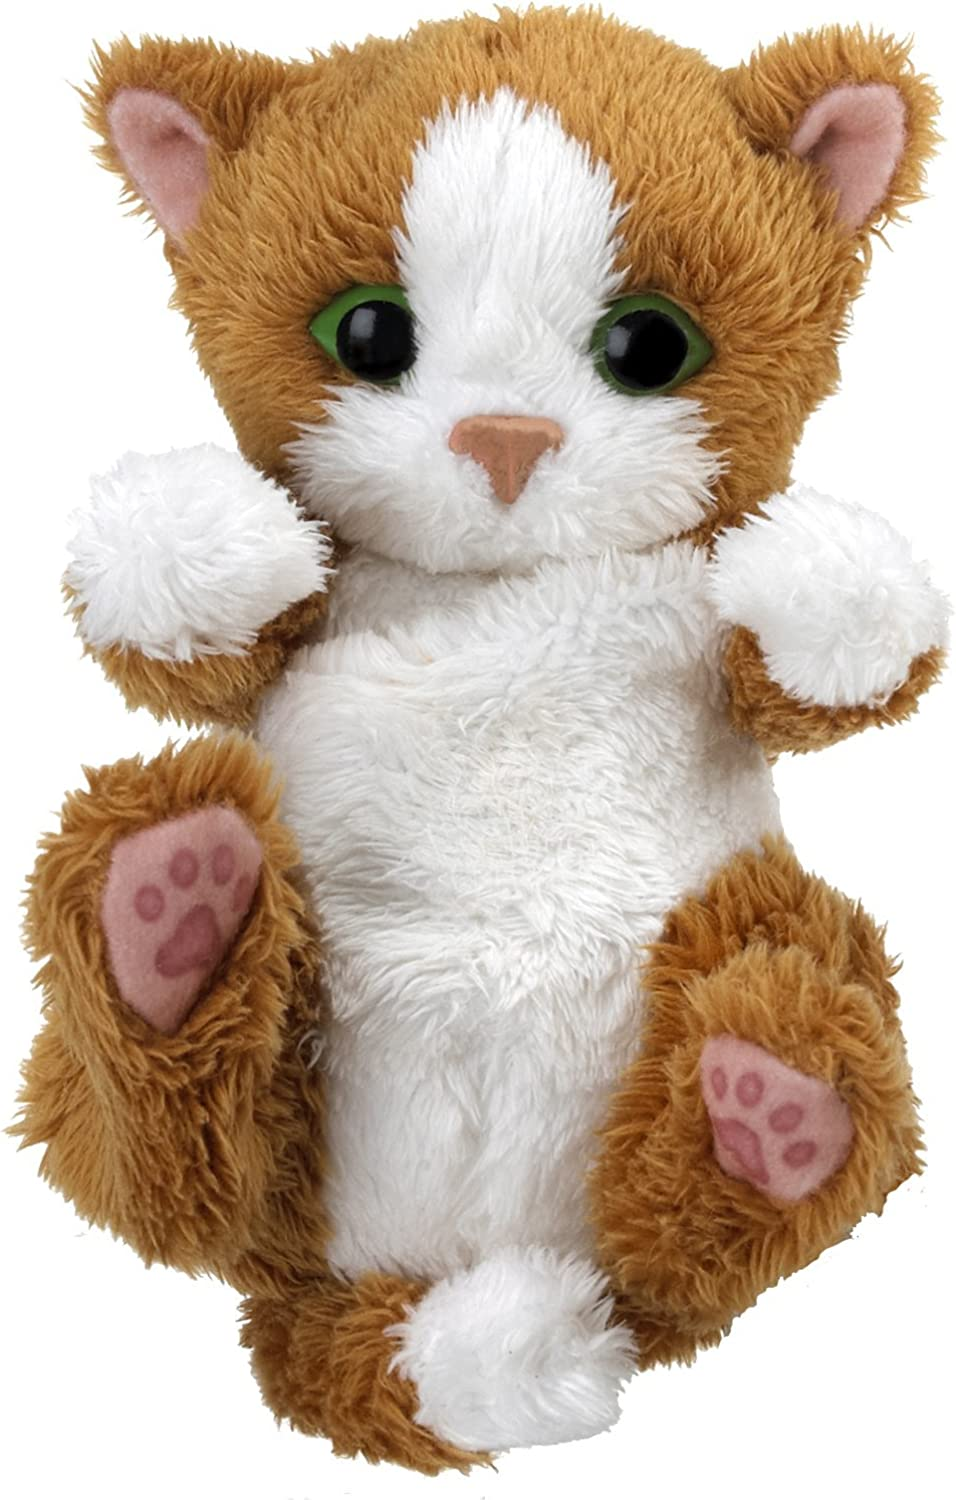 Furreal Friends Snuggimals Marmalade And White Kitten Amazon Co Uk Toys Games